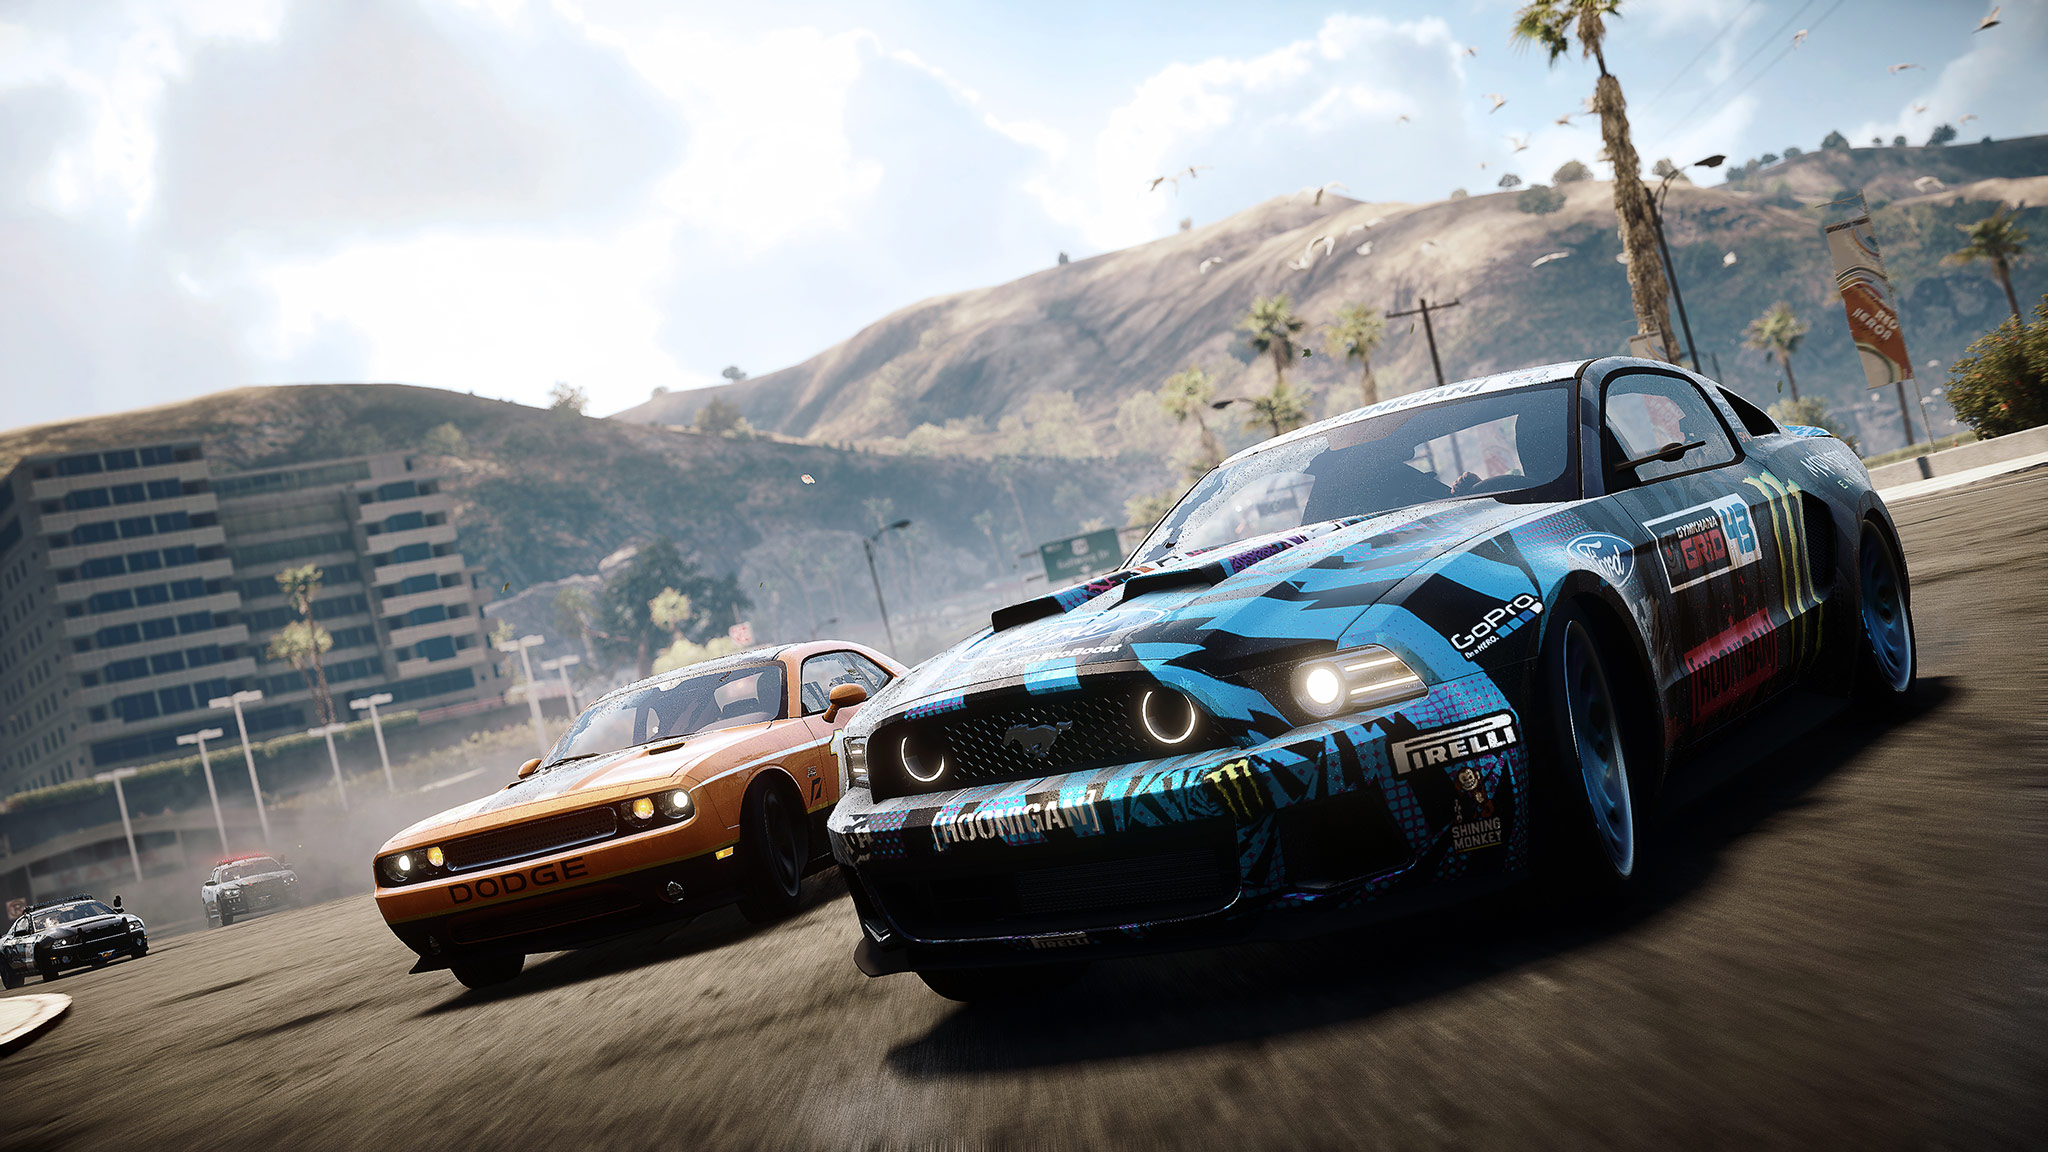 This image, taken from the latest Need For Speed video, shows the Ken Block Ford Mustang from the new game power drifting a corner.